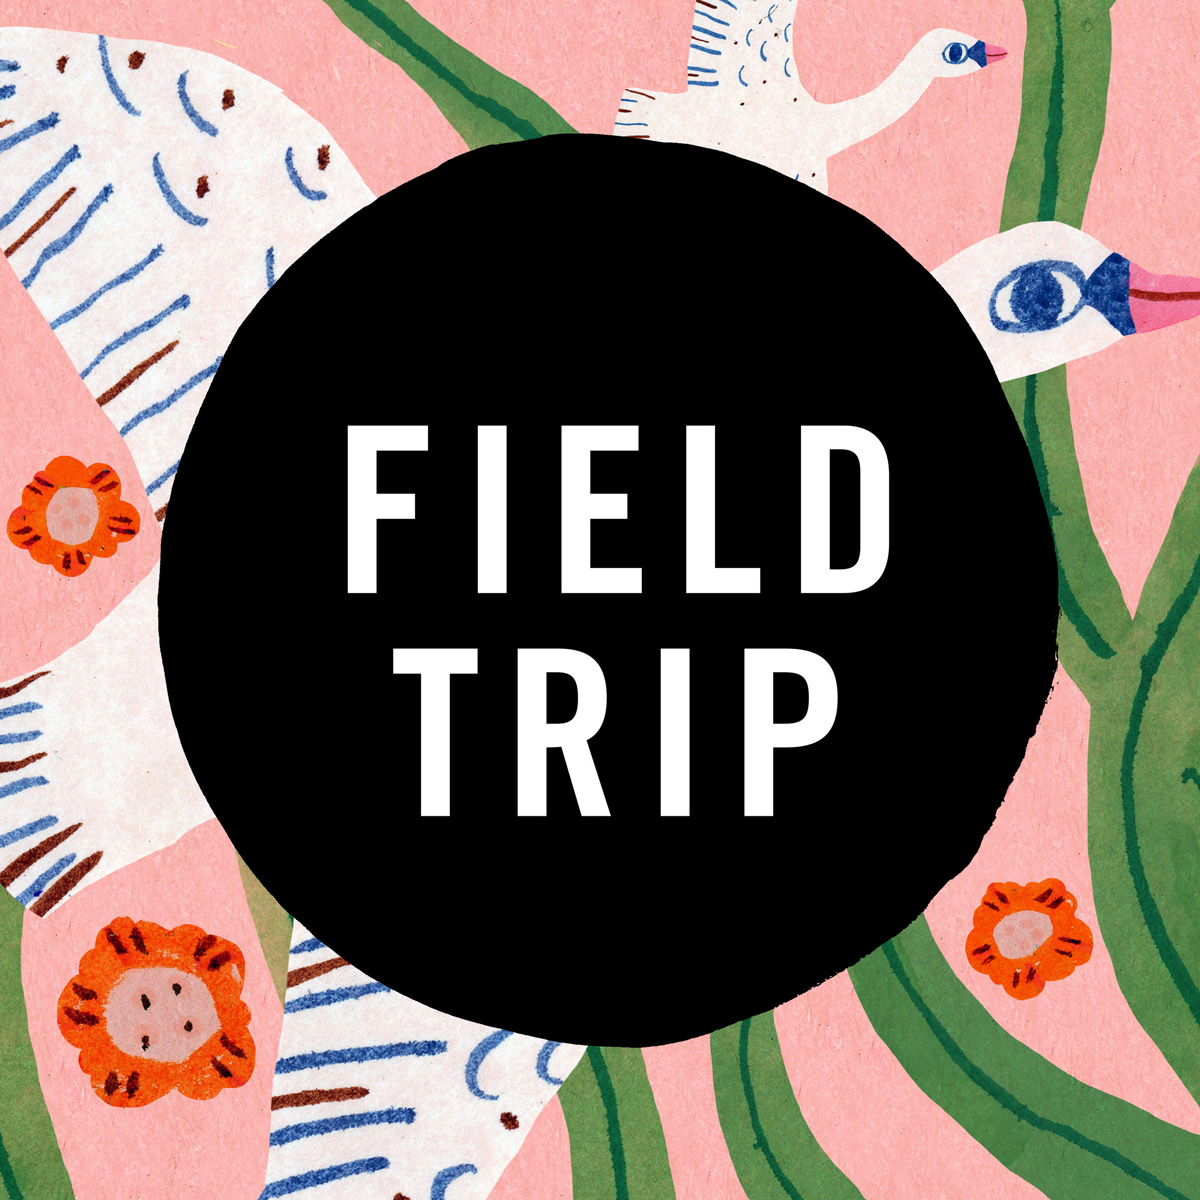 Hi Everyone! I'm super excited to announce that Field Trip is back this year and I'll be participating!   Please sign up for our monthly newsletter for show info and snippets of great artwork as we lead up to the big day http://eepurl.com/b4oHTf -  Our third, annual event will be held on Monday, May 21st, 2018 in the same beautiful loft as last year, a stone's throw from the Javits Center in New York. We can't wait! http://www.fieldtripshow.com